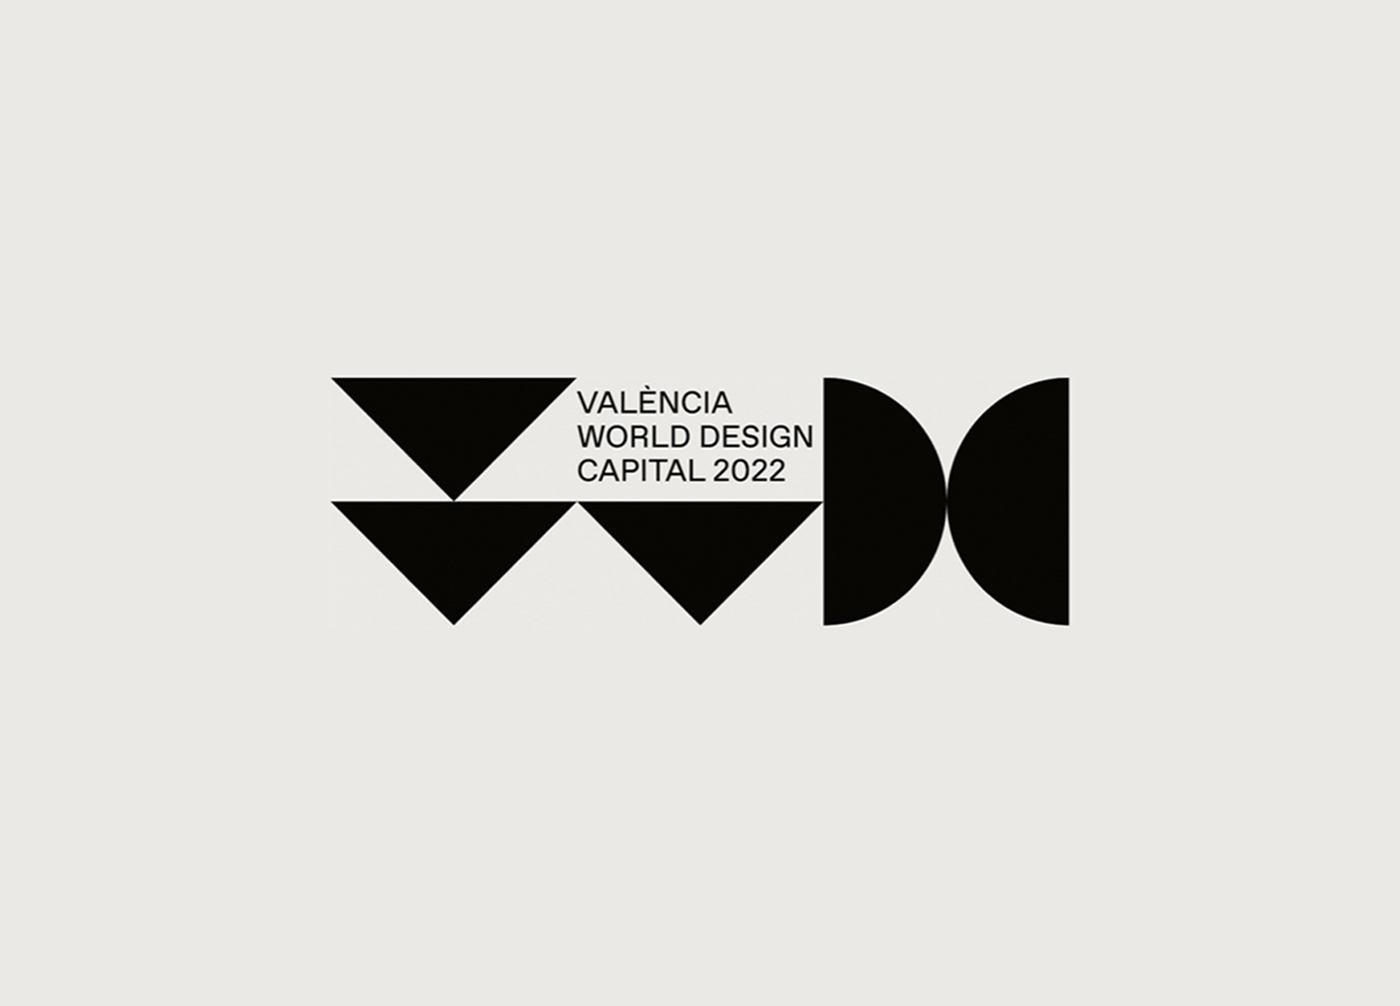 Valencia World Design Capital 2020